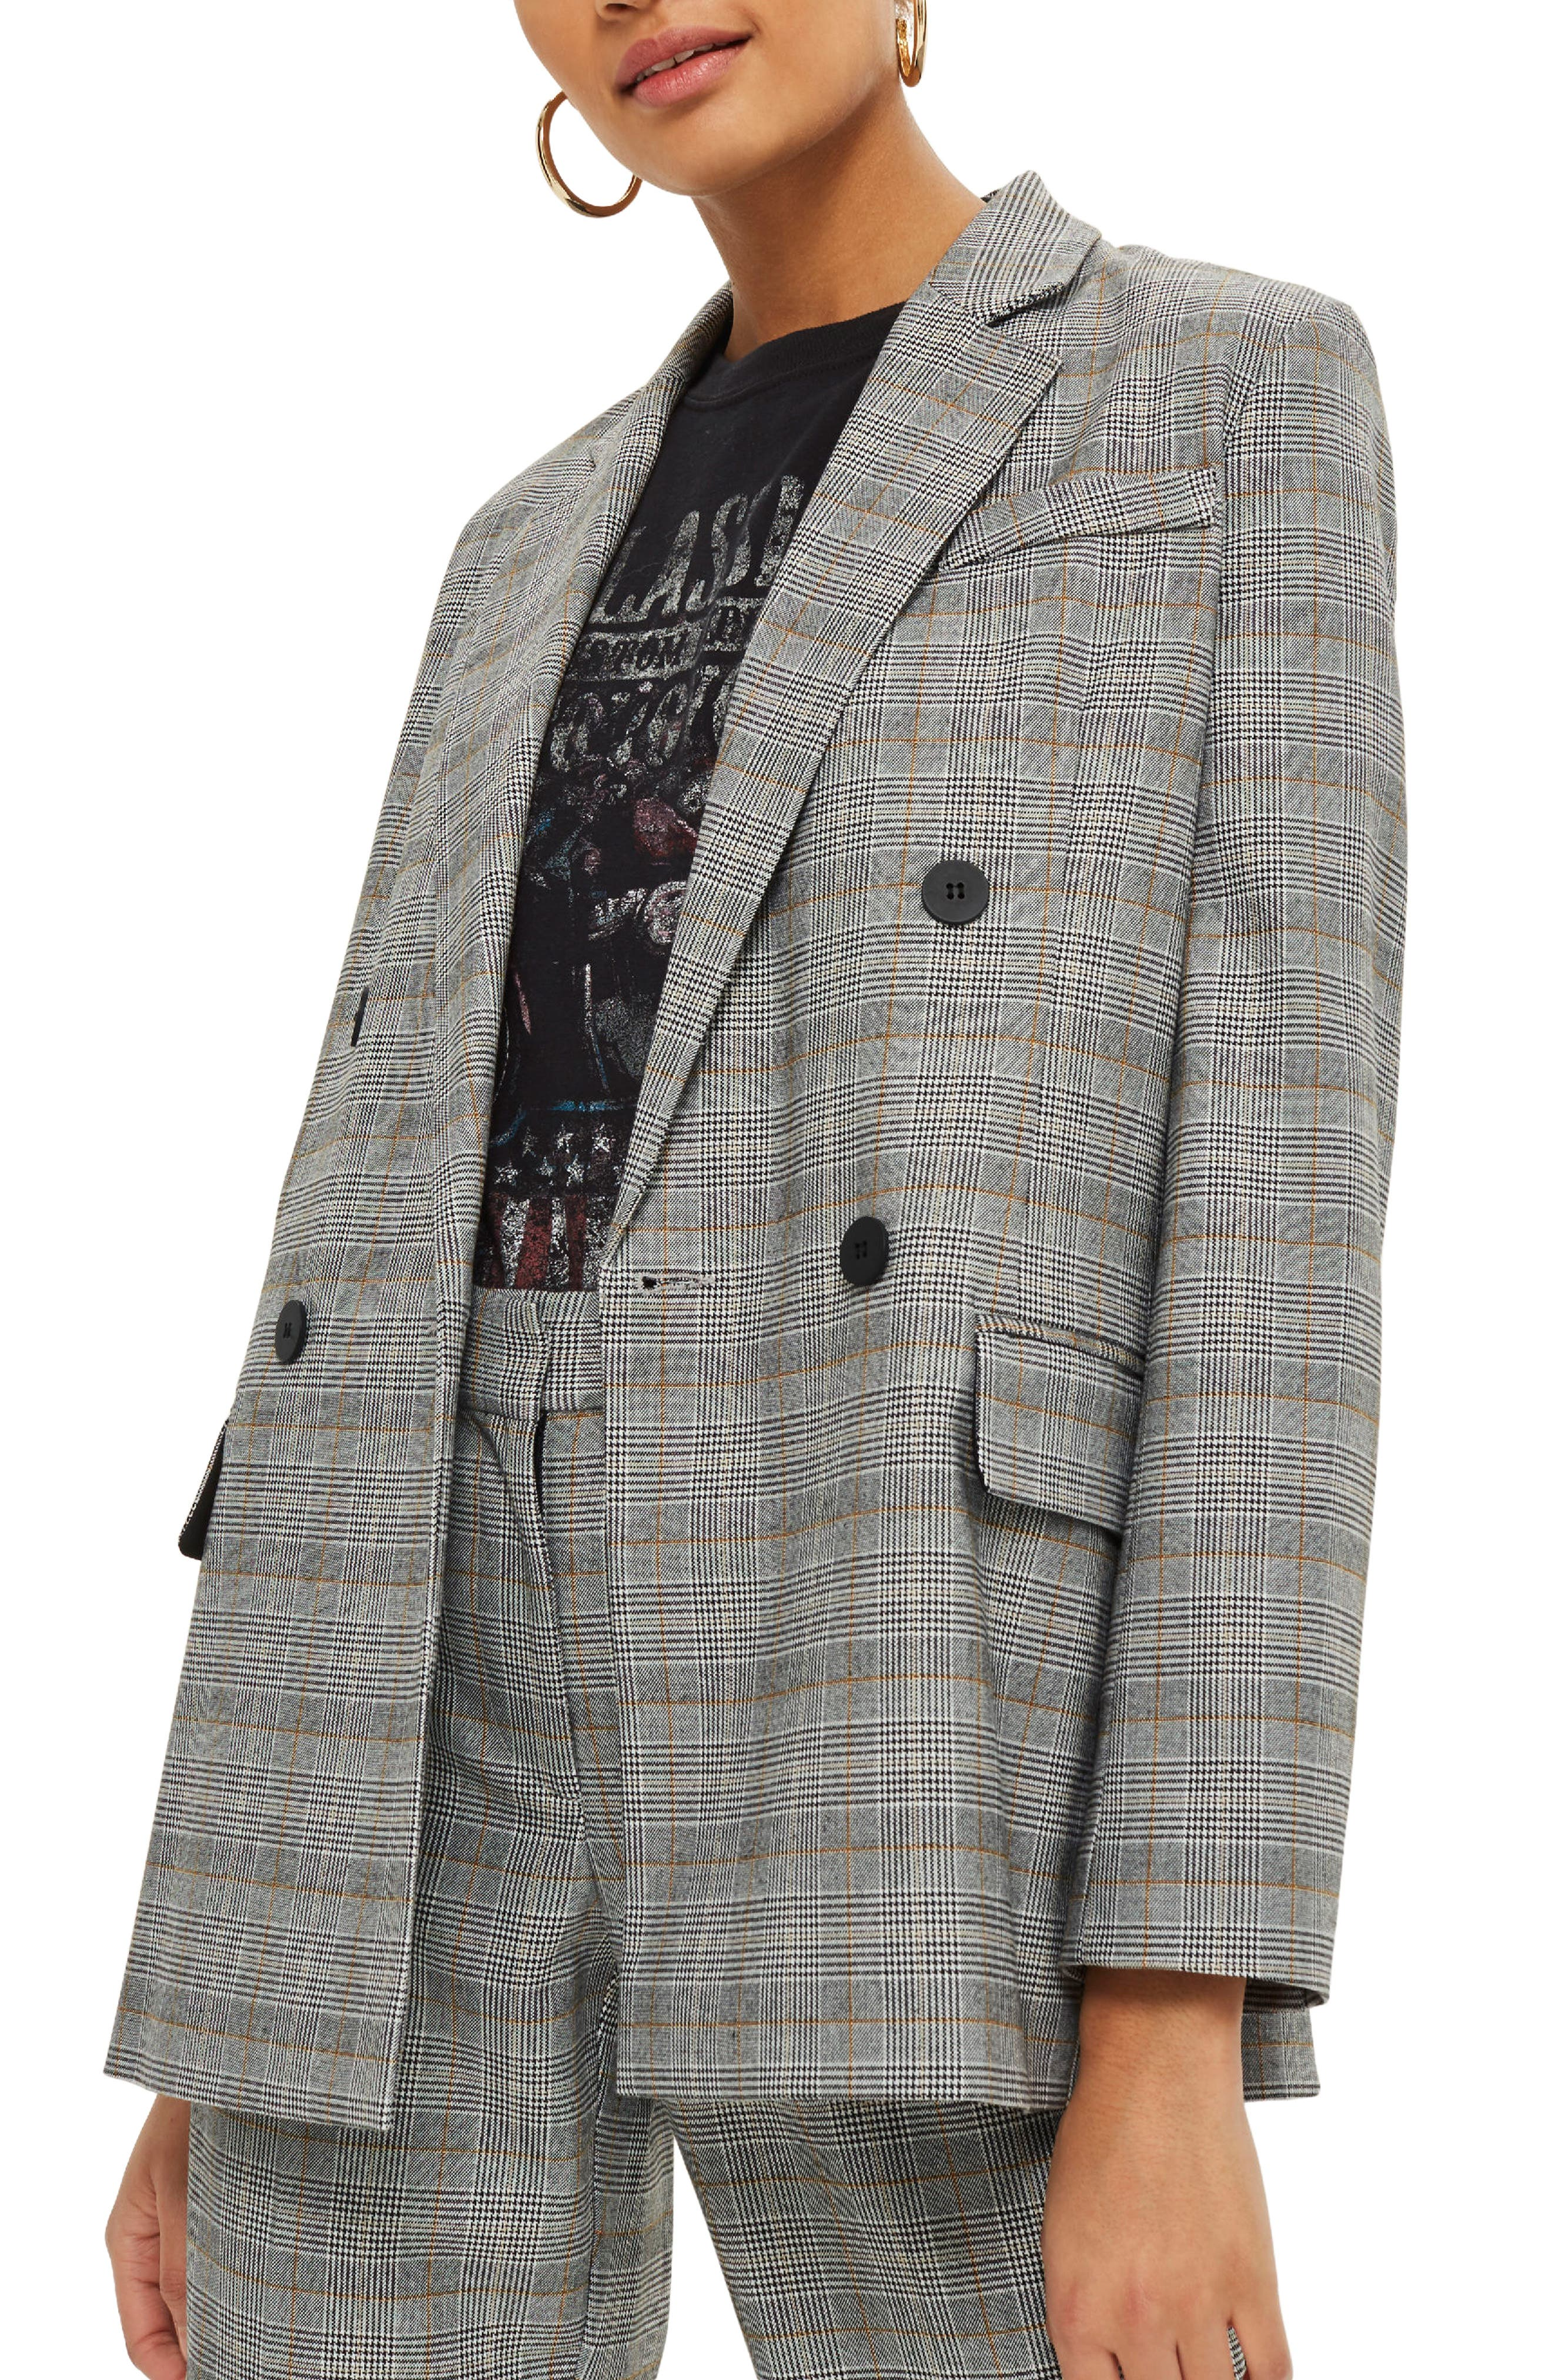 TOPSHOP, Double Breasted Check Jacket, Alternate thumbnail 3, color, 020